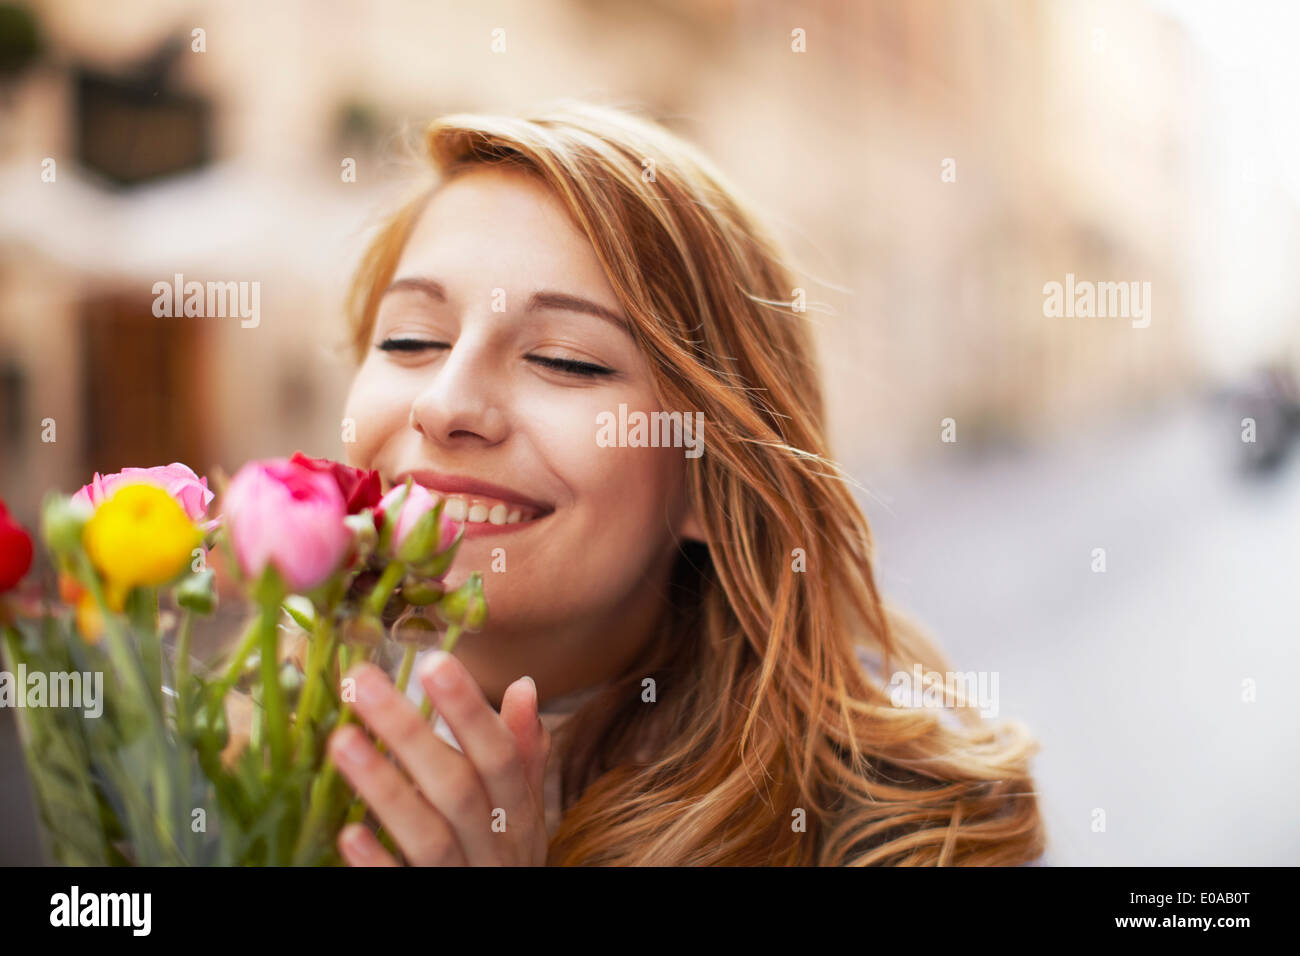 Smiling young woman smelling a bunch of flowers - Stock Image